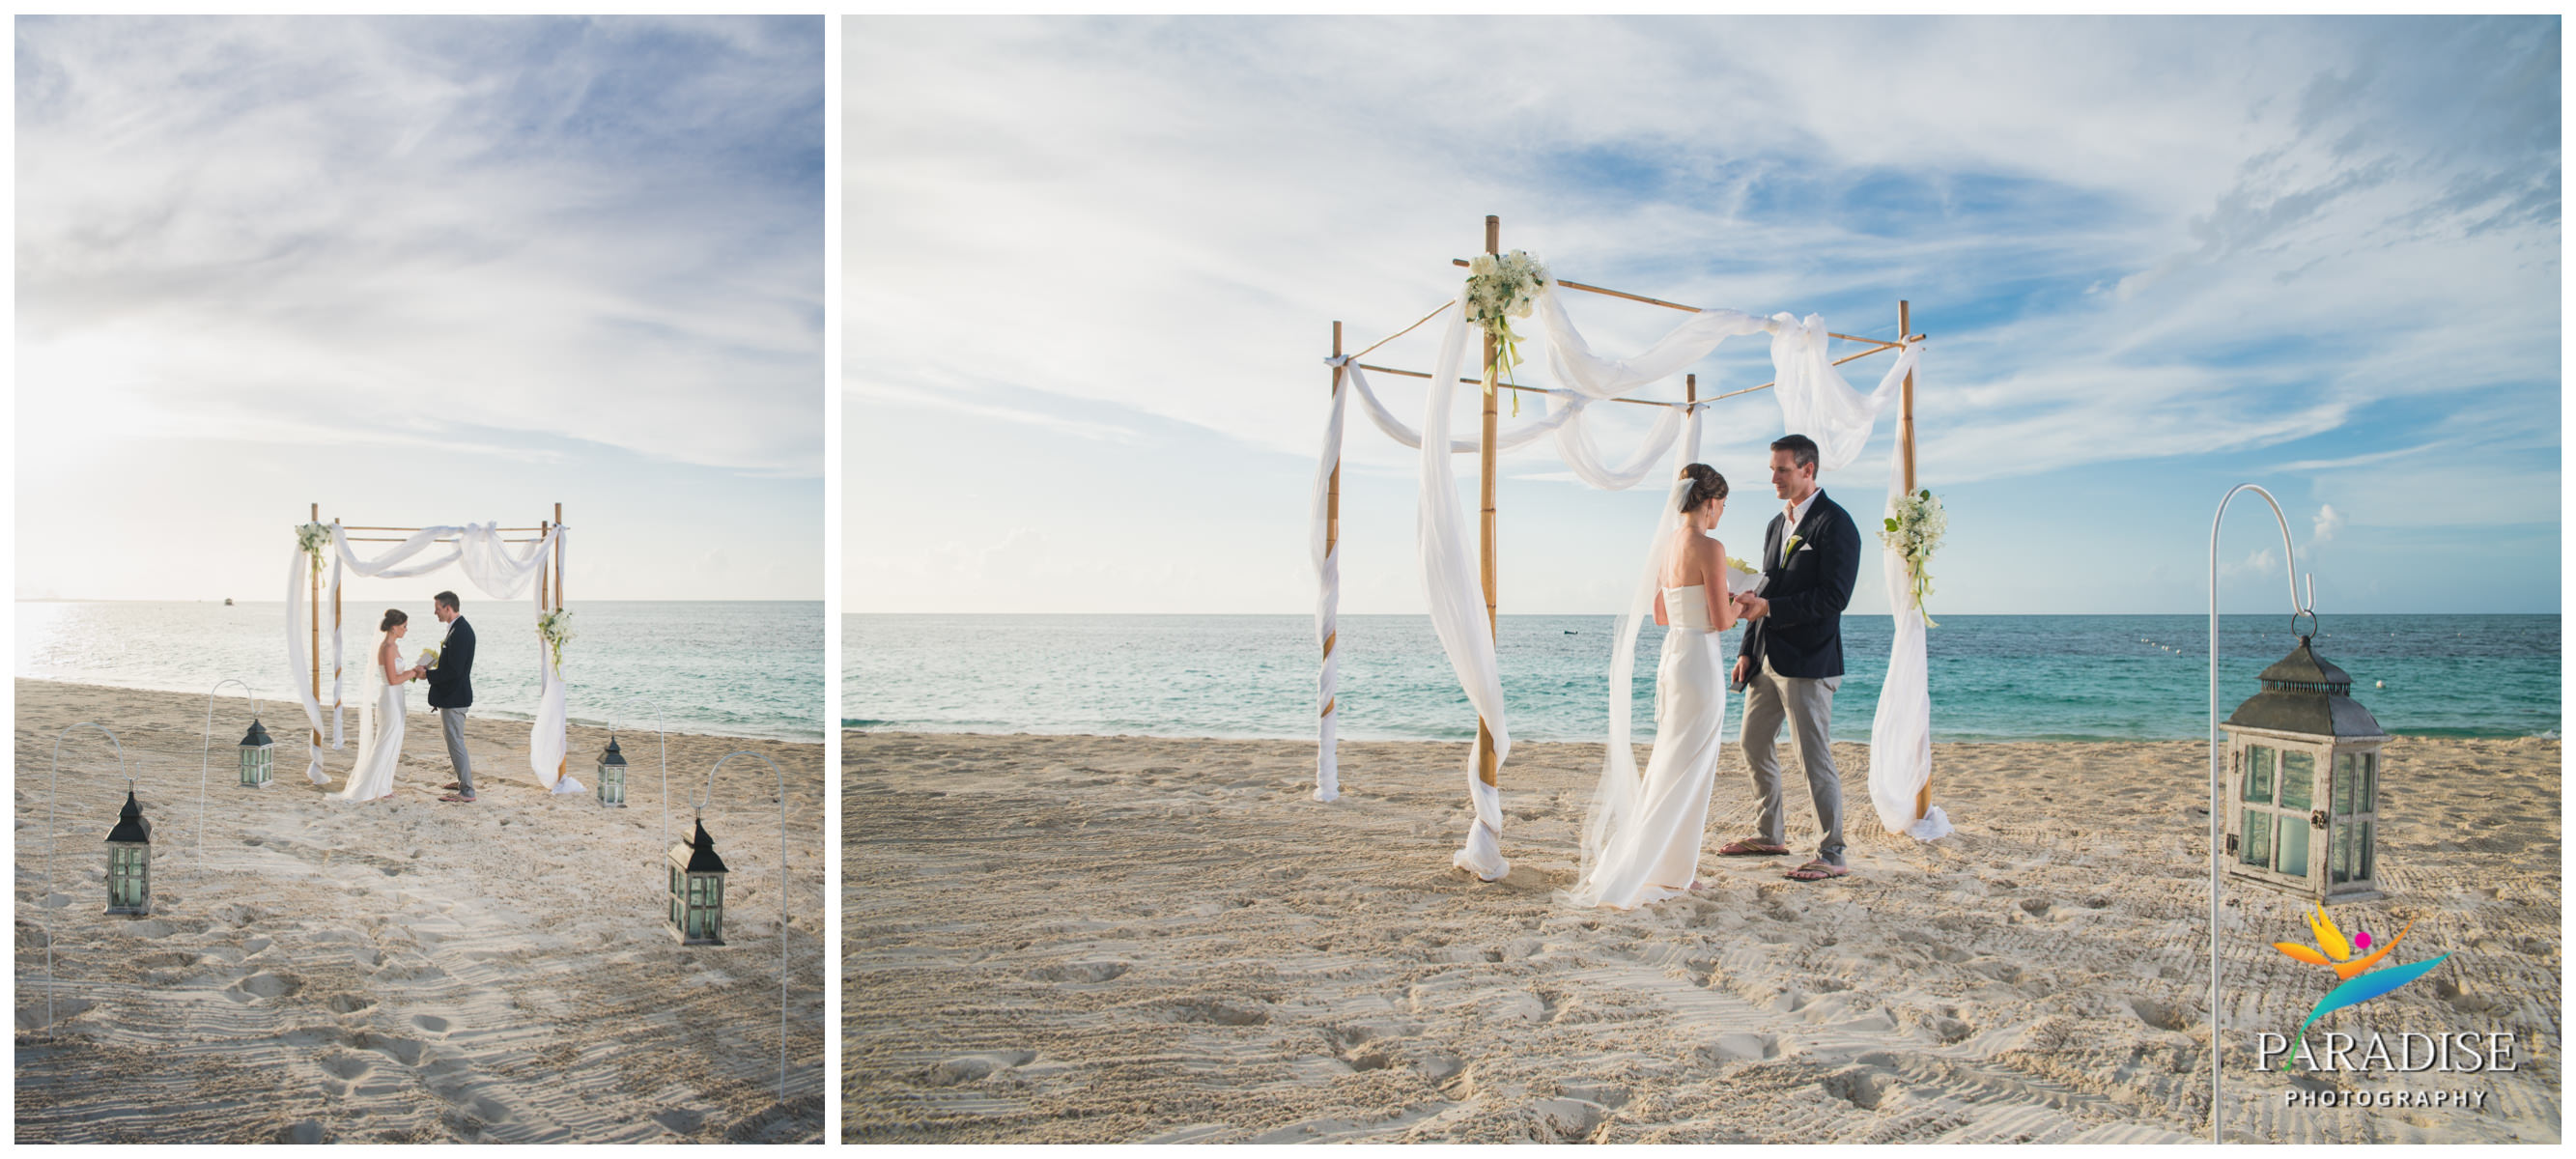 011-turks-and-caicos-destination-wedding-beach-caribbean-photography-photographer-pic-pictures-bride-groom-grace-bay-gansevoort-elopement